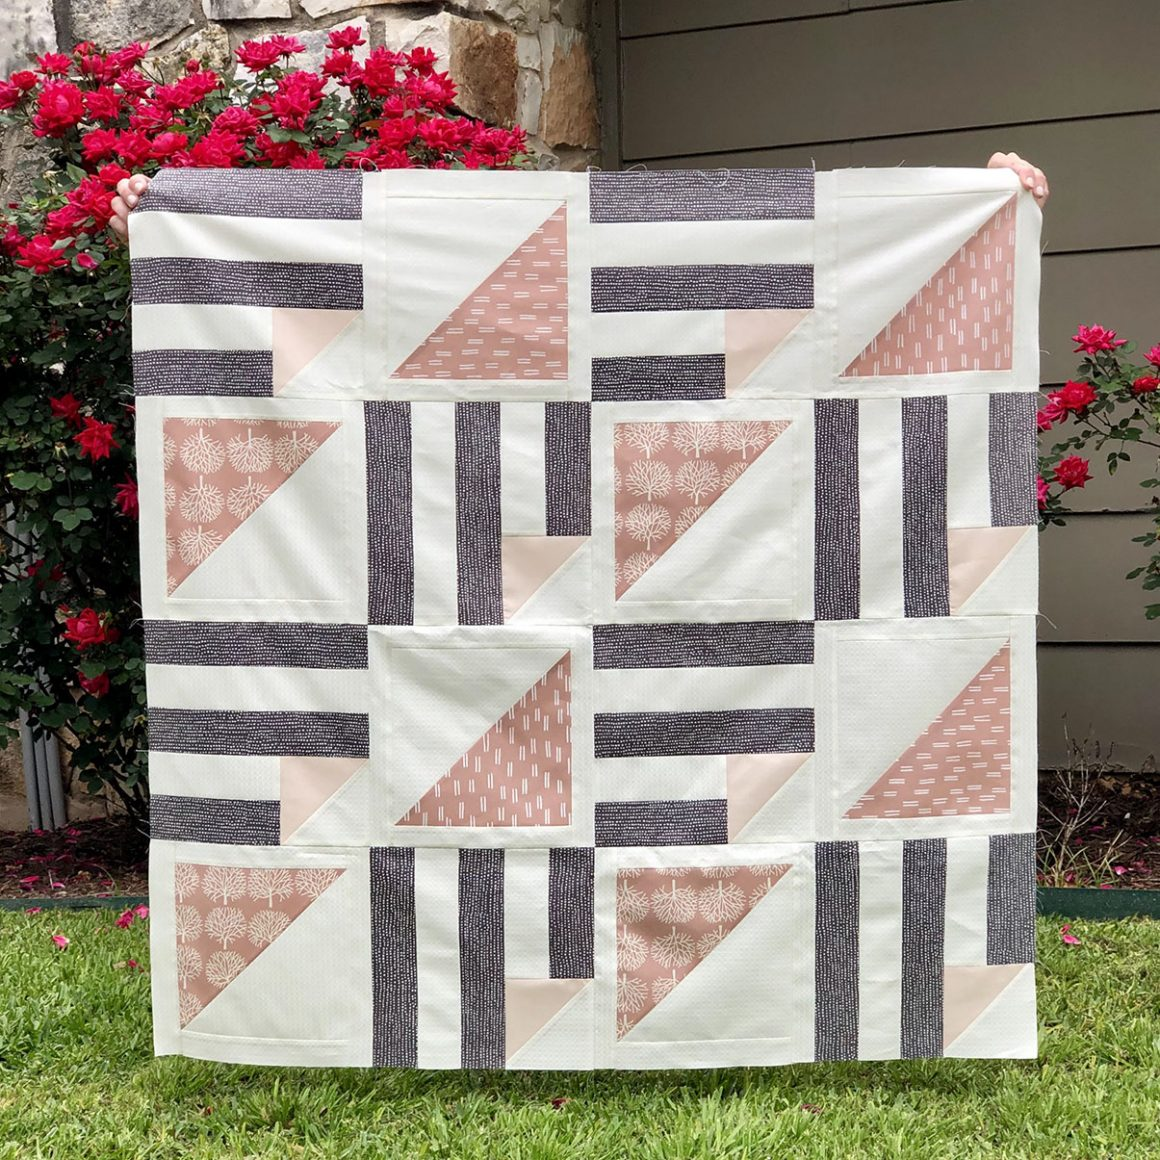 Half Pint Quilt - made by Finley Fabric